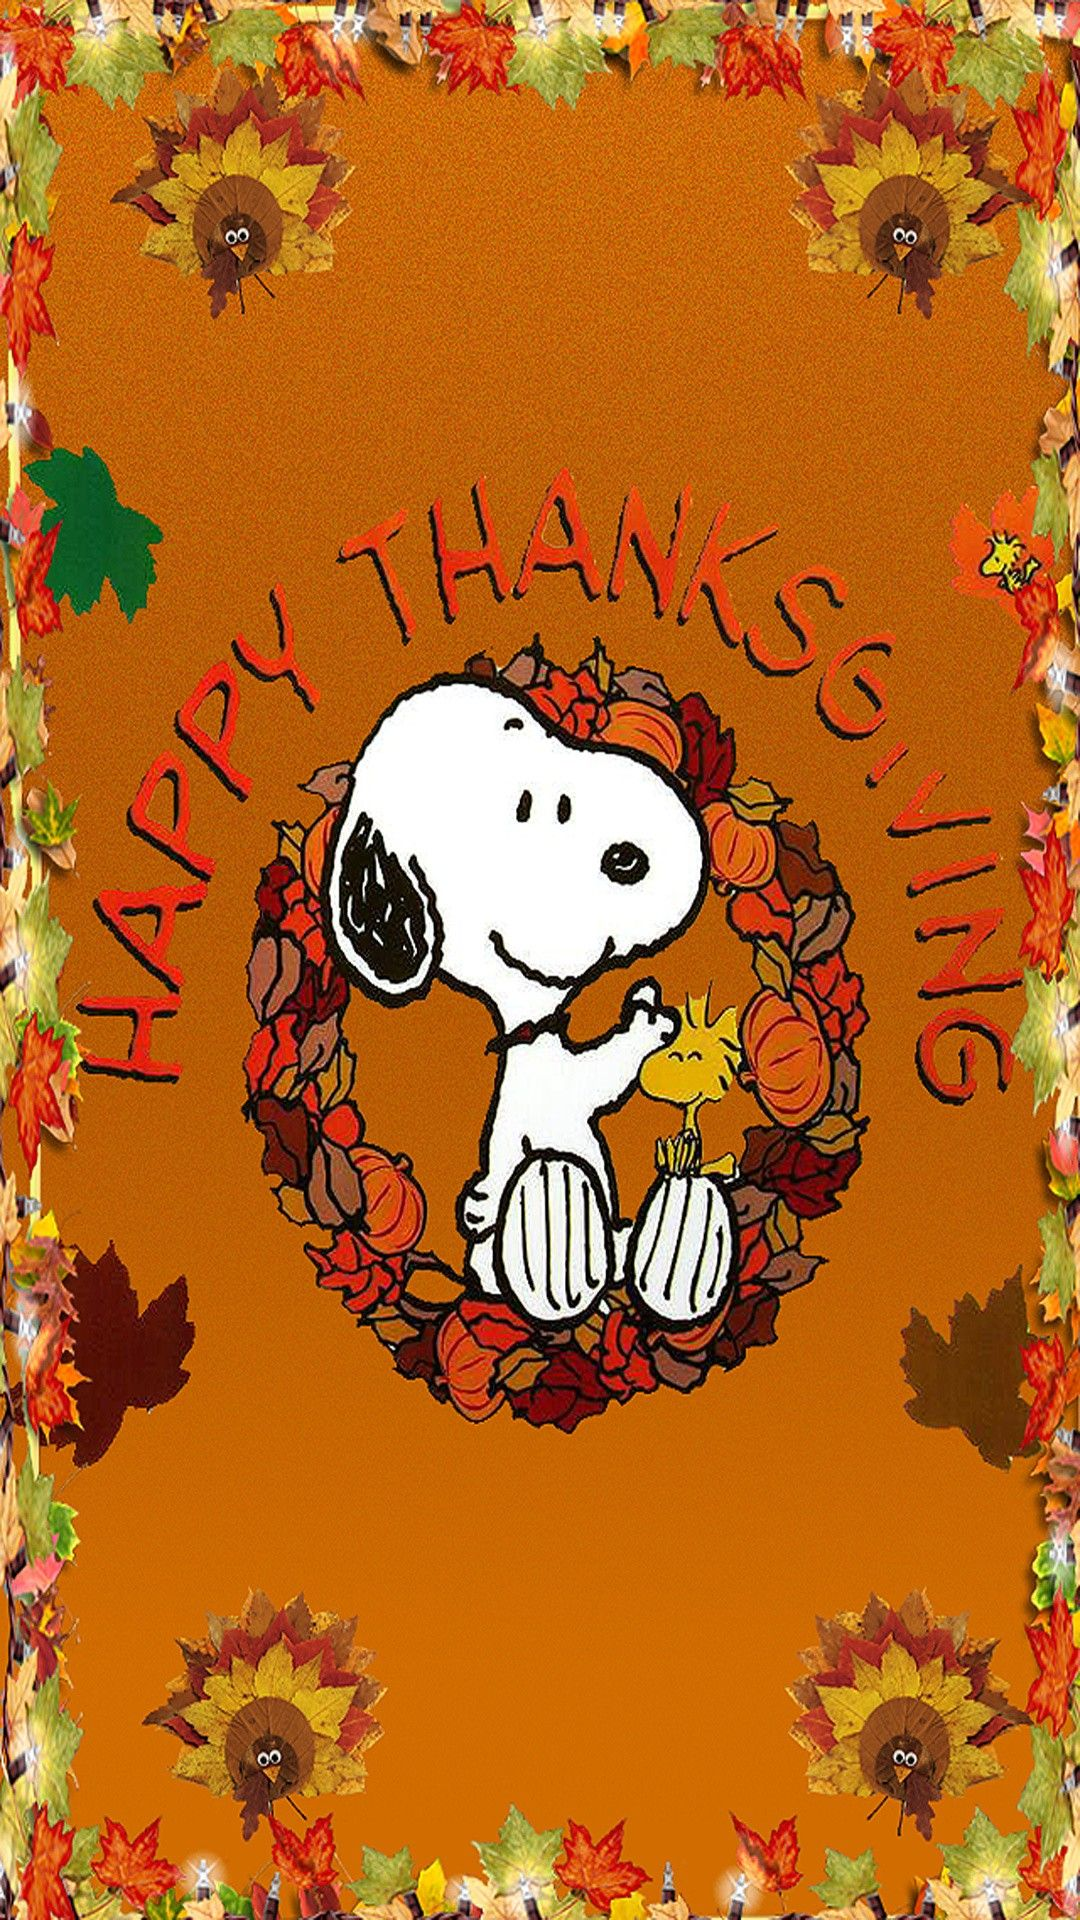 Thanksgiving Wallpaper Iphone Background, Beautiful - Happy Thanksgiving Snoopy - HD Wallpaper